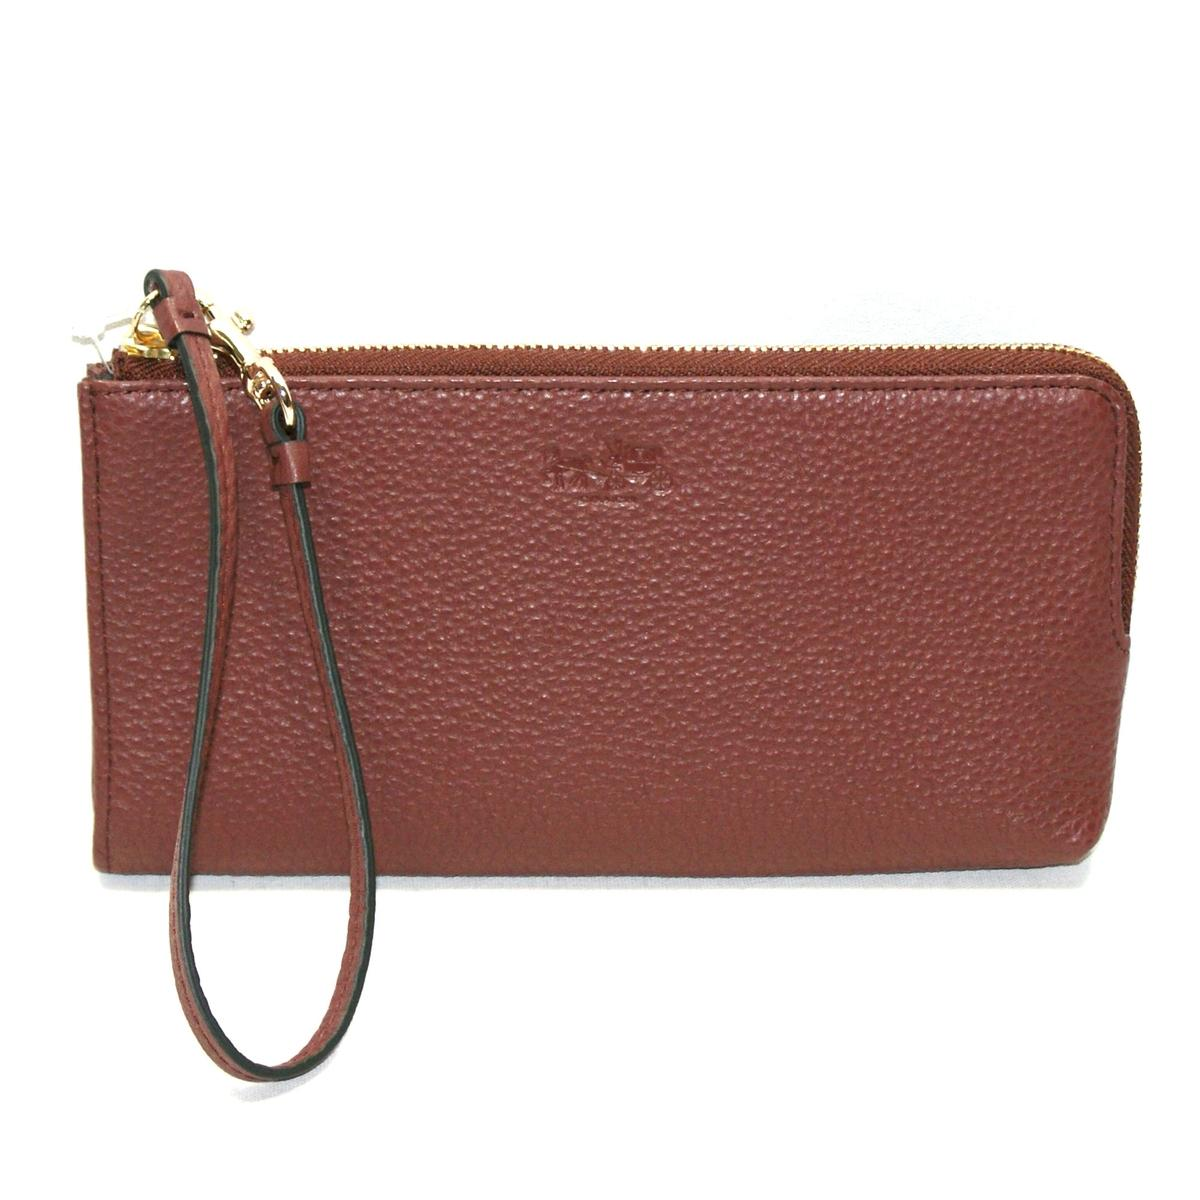 Coach Bleecker Leather Zippipy Wristlet/ Wallet Brick ...